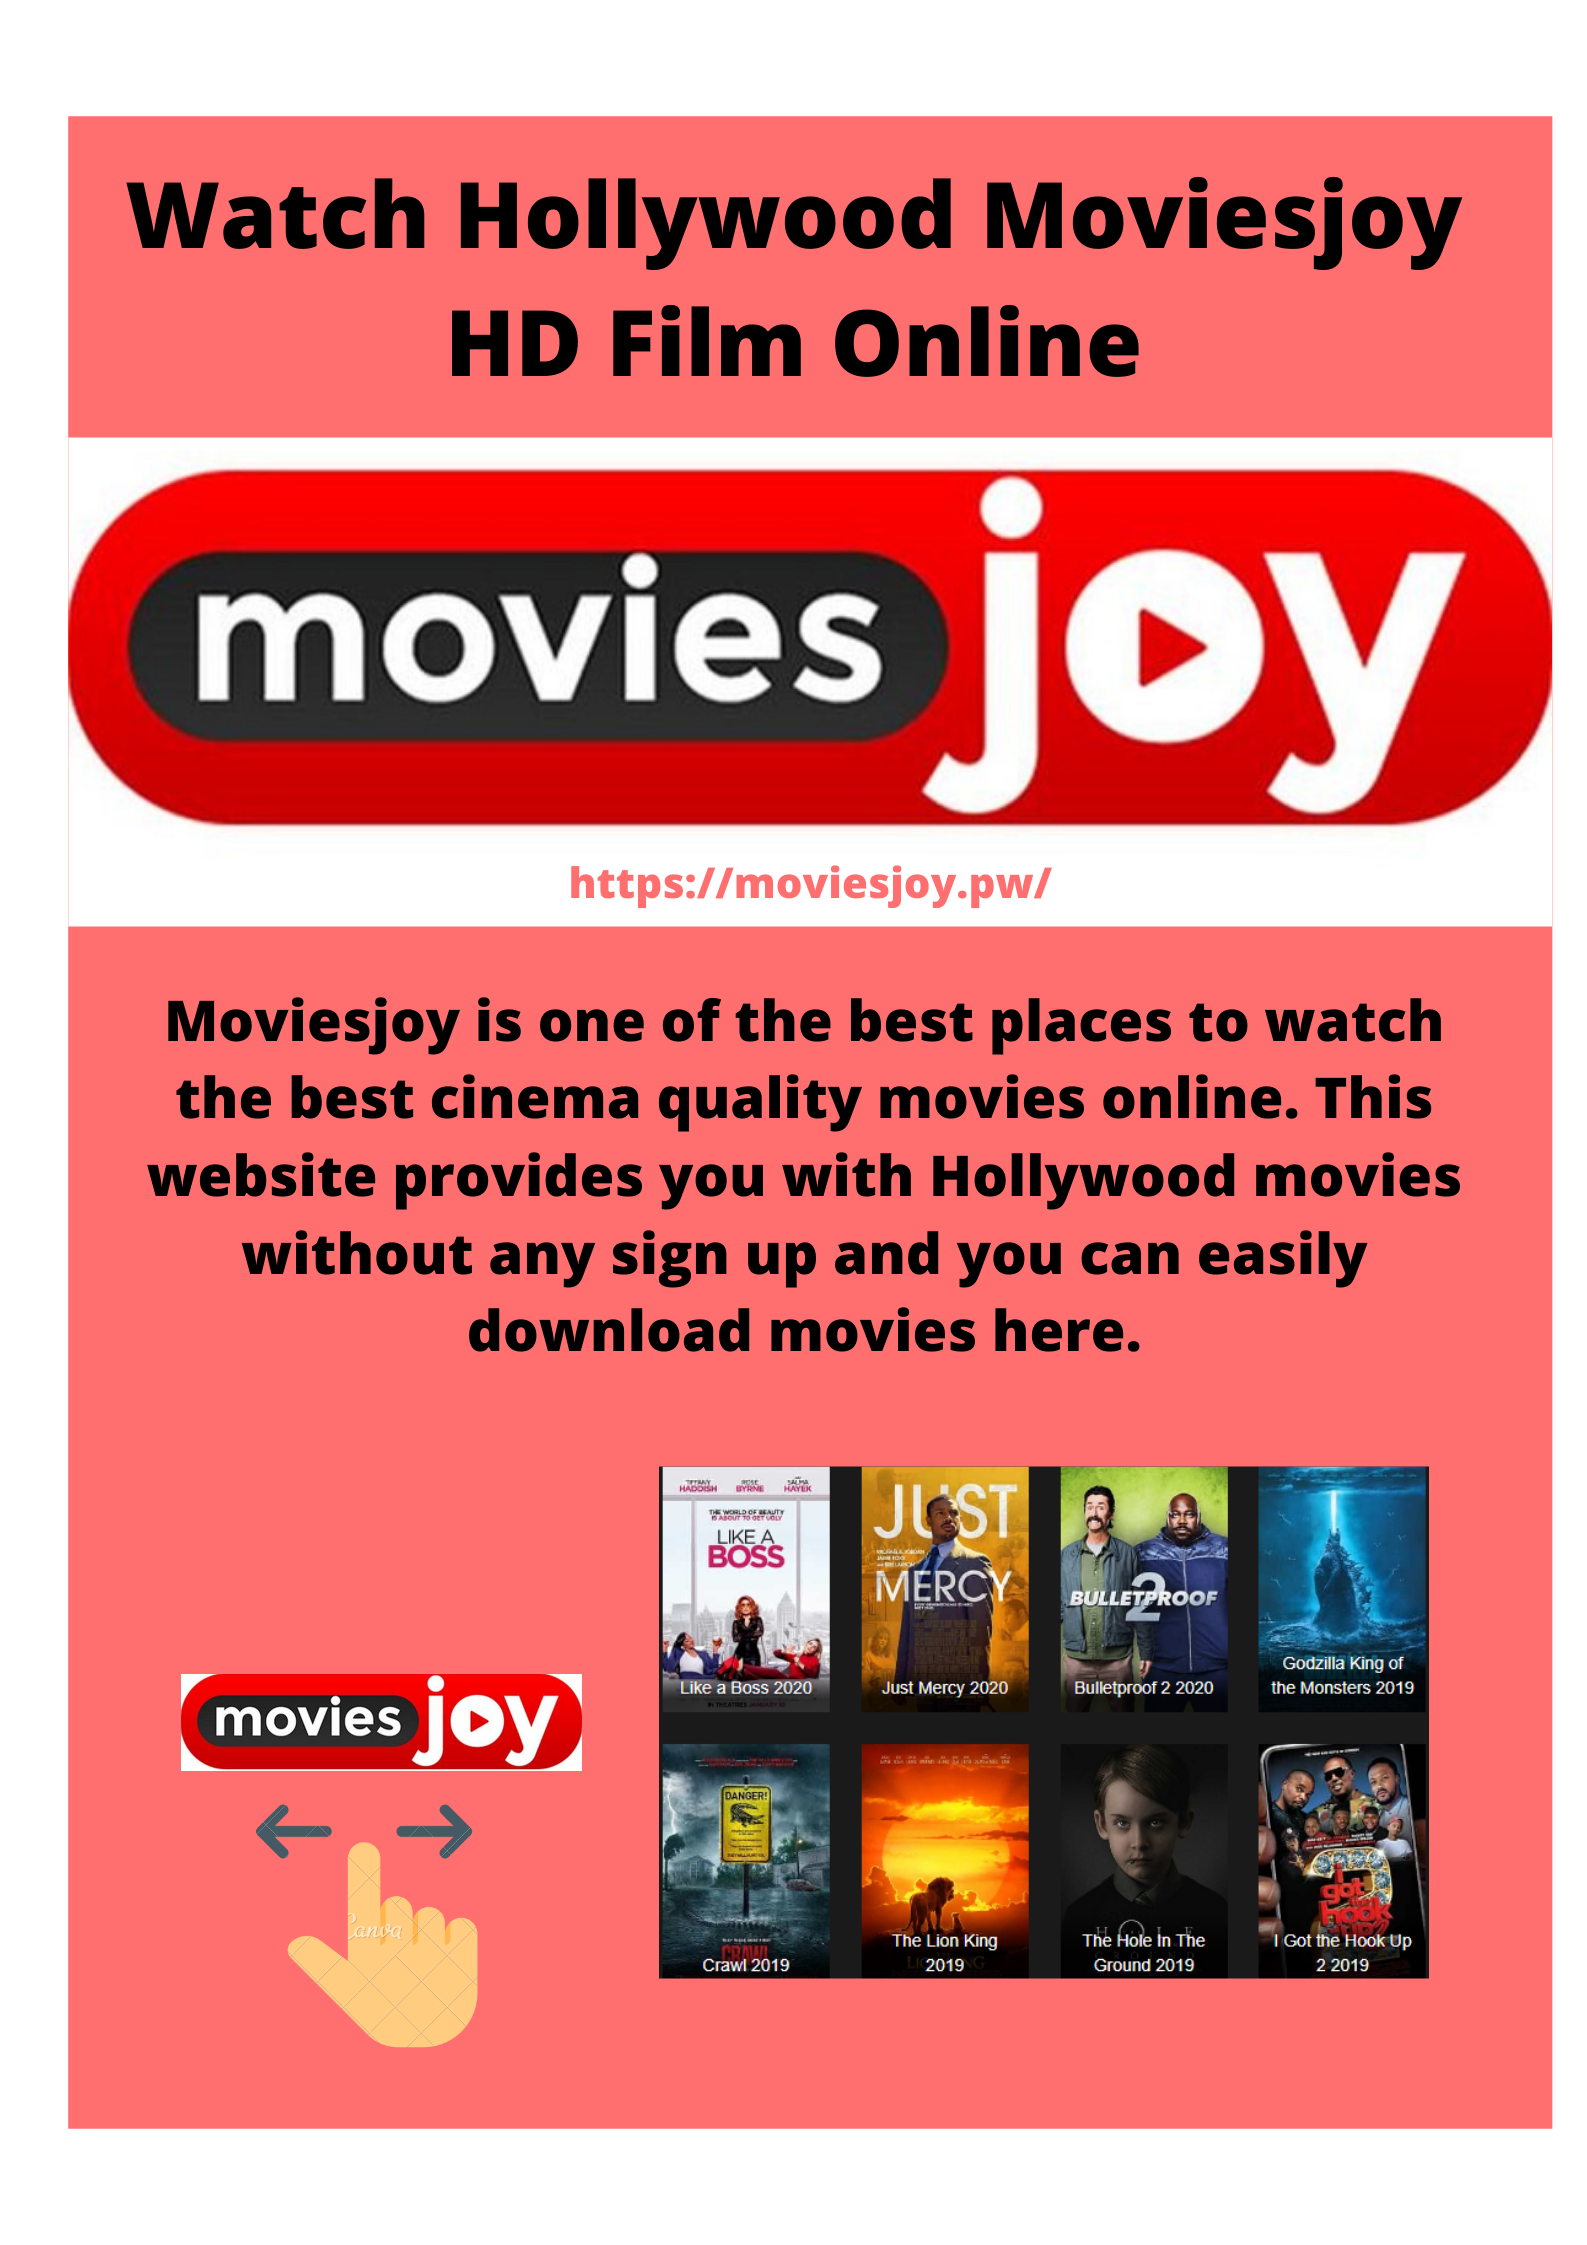 Download Latest Movie Joy Streaming free HD Quality Movies